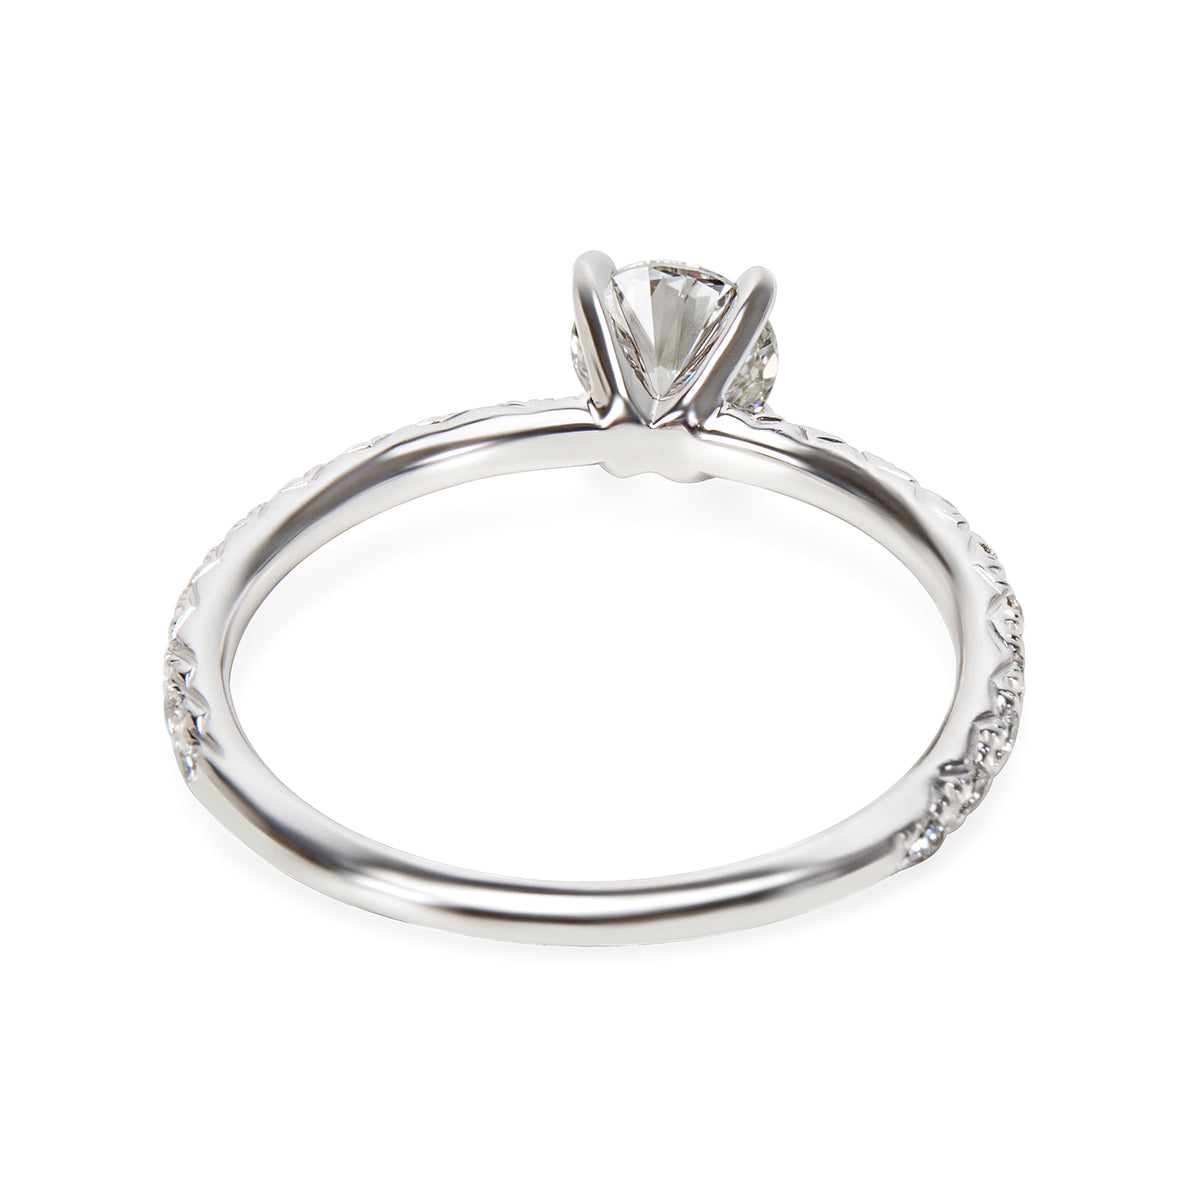 GIA Certified James Allen Diamond Engagement Ring in 14KT White Gold 0.90 ctw